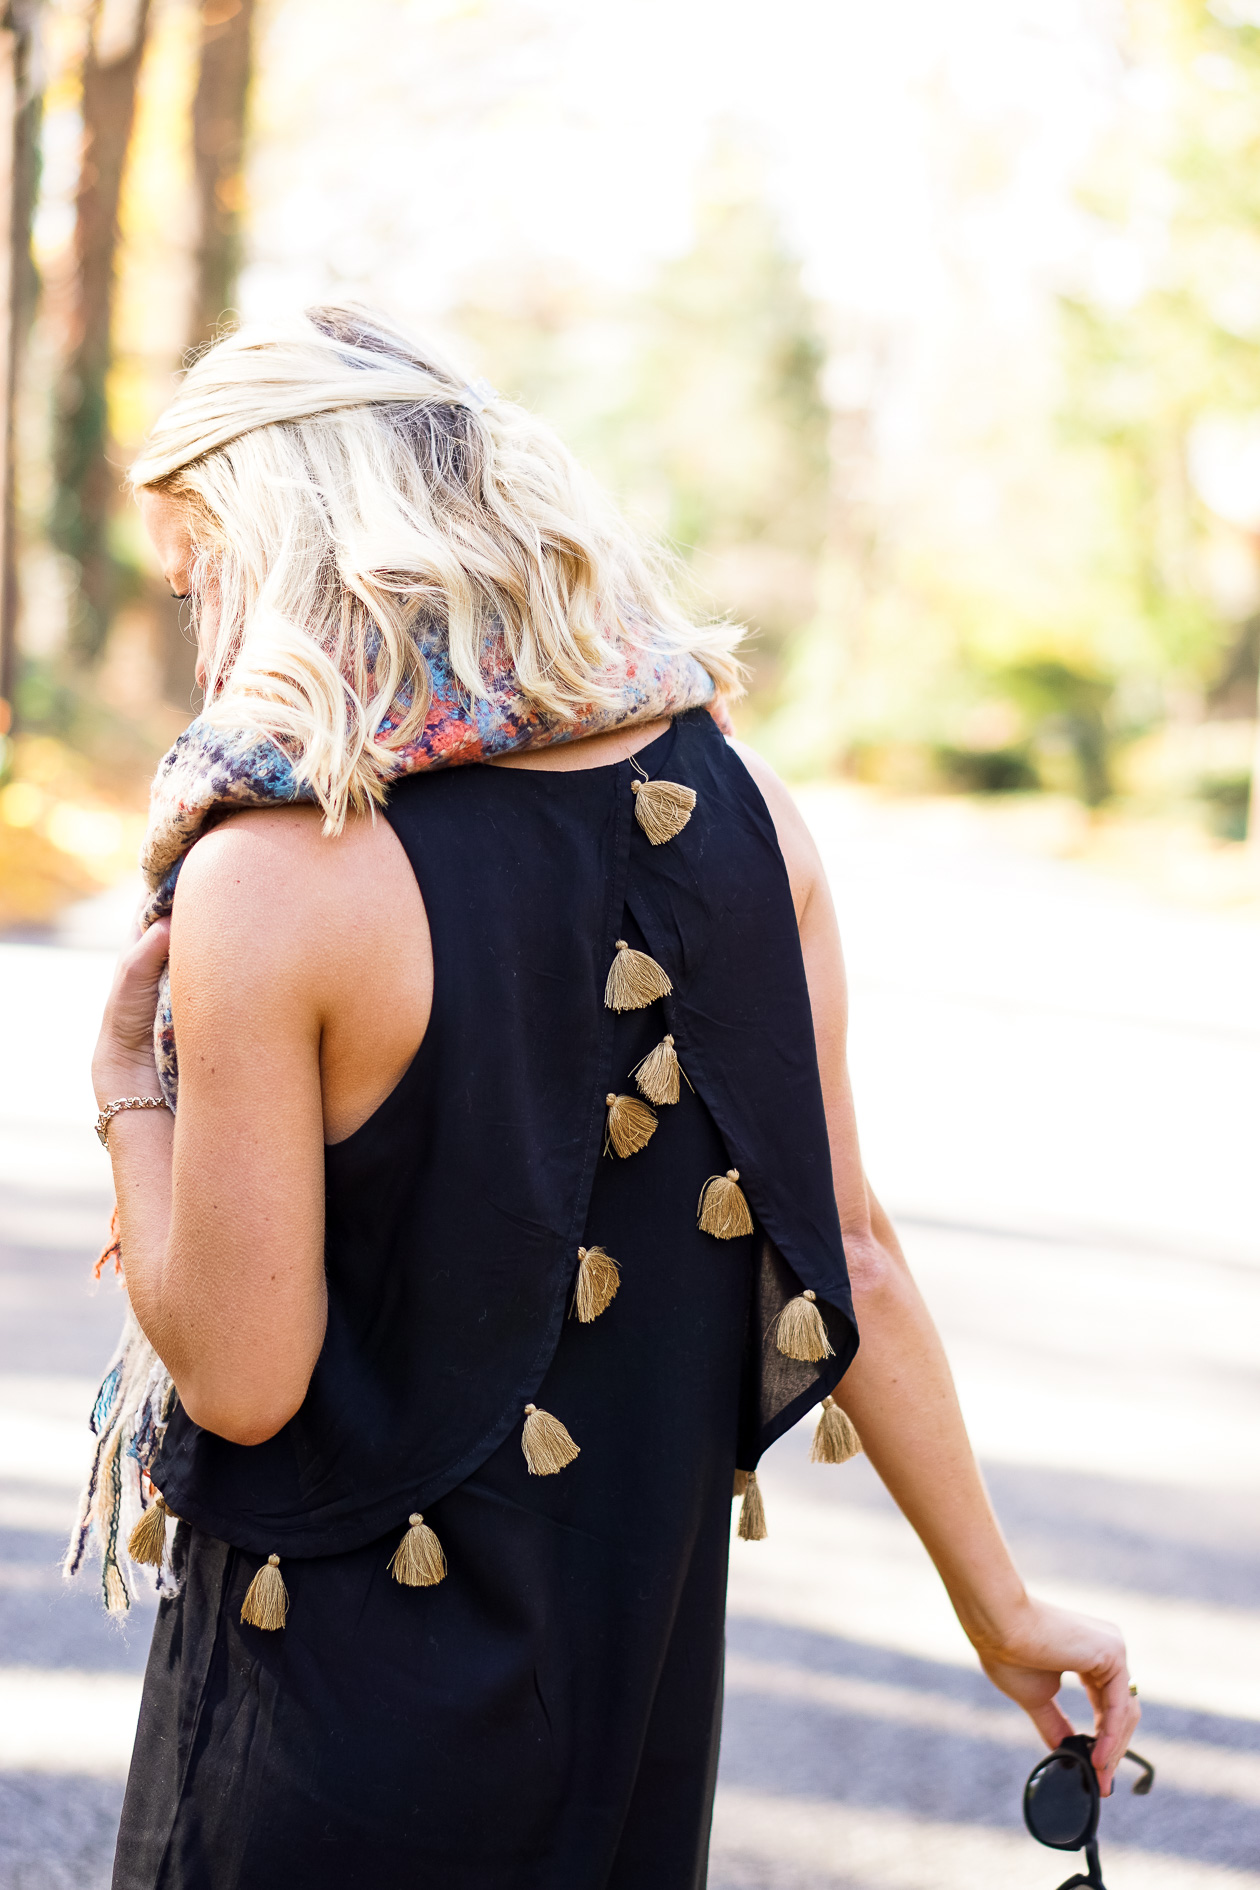 Black dress with gold tassels and blanket scar